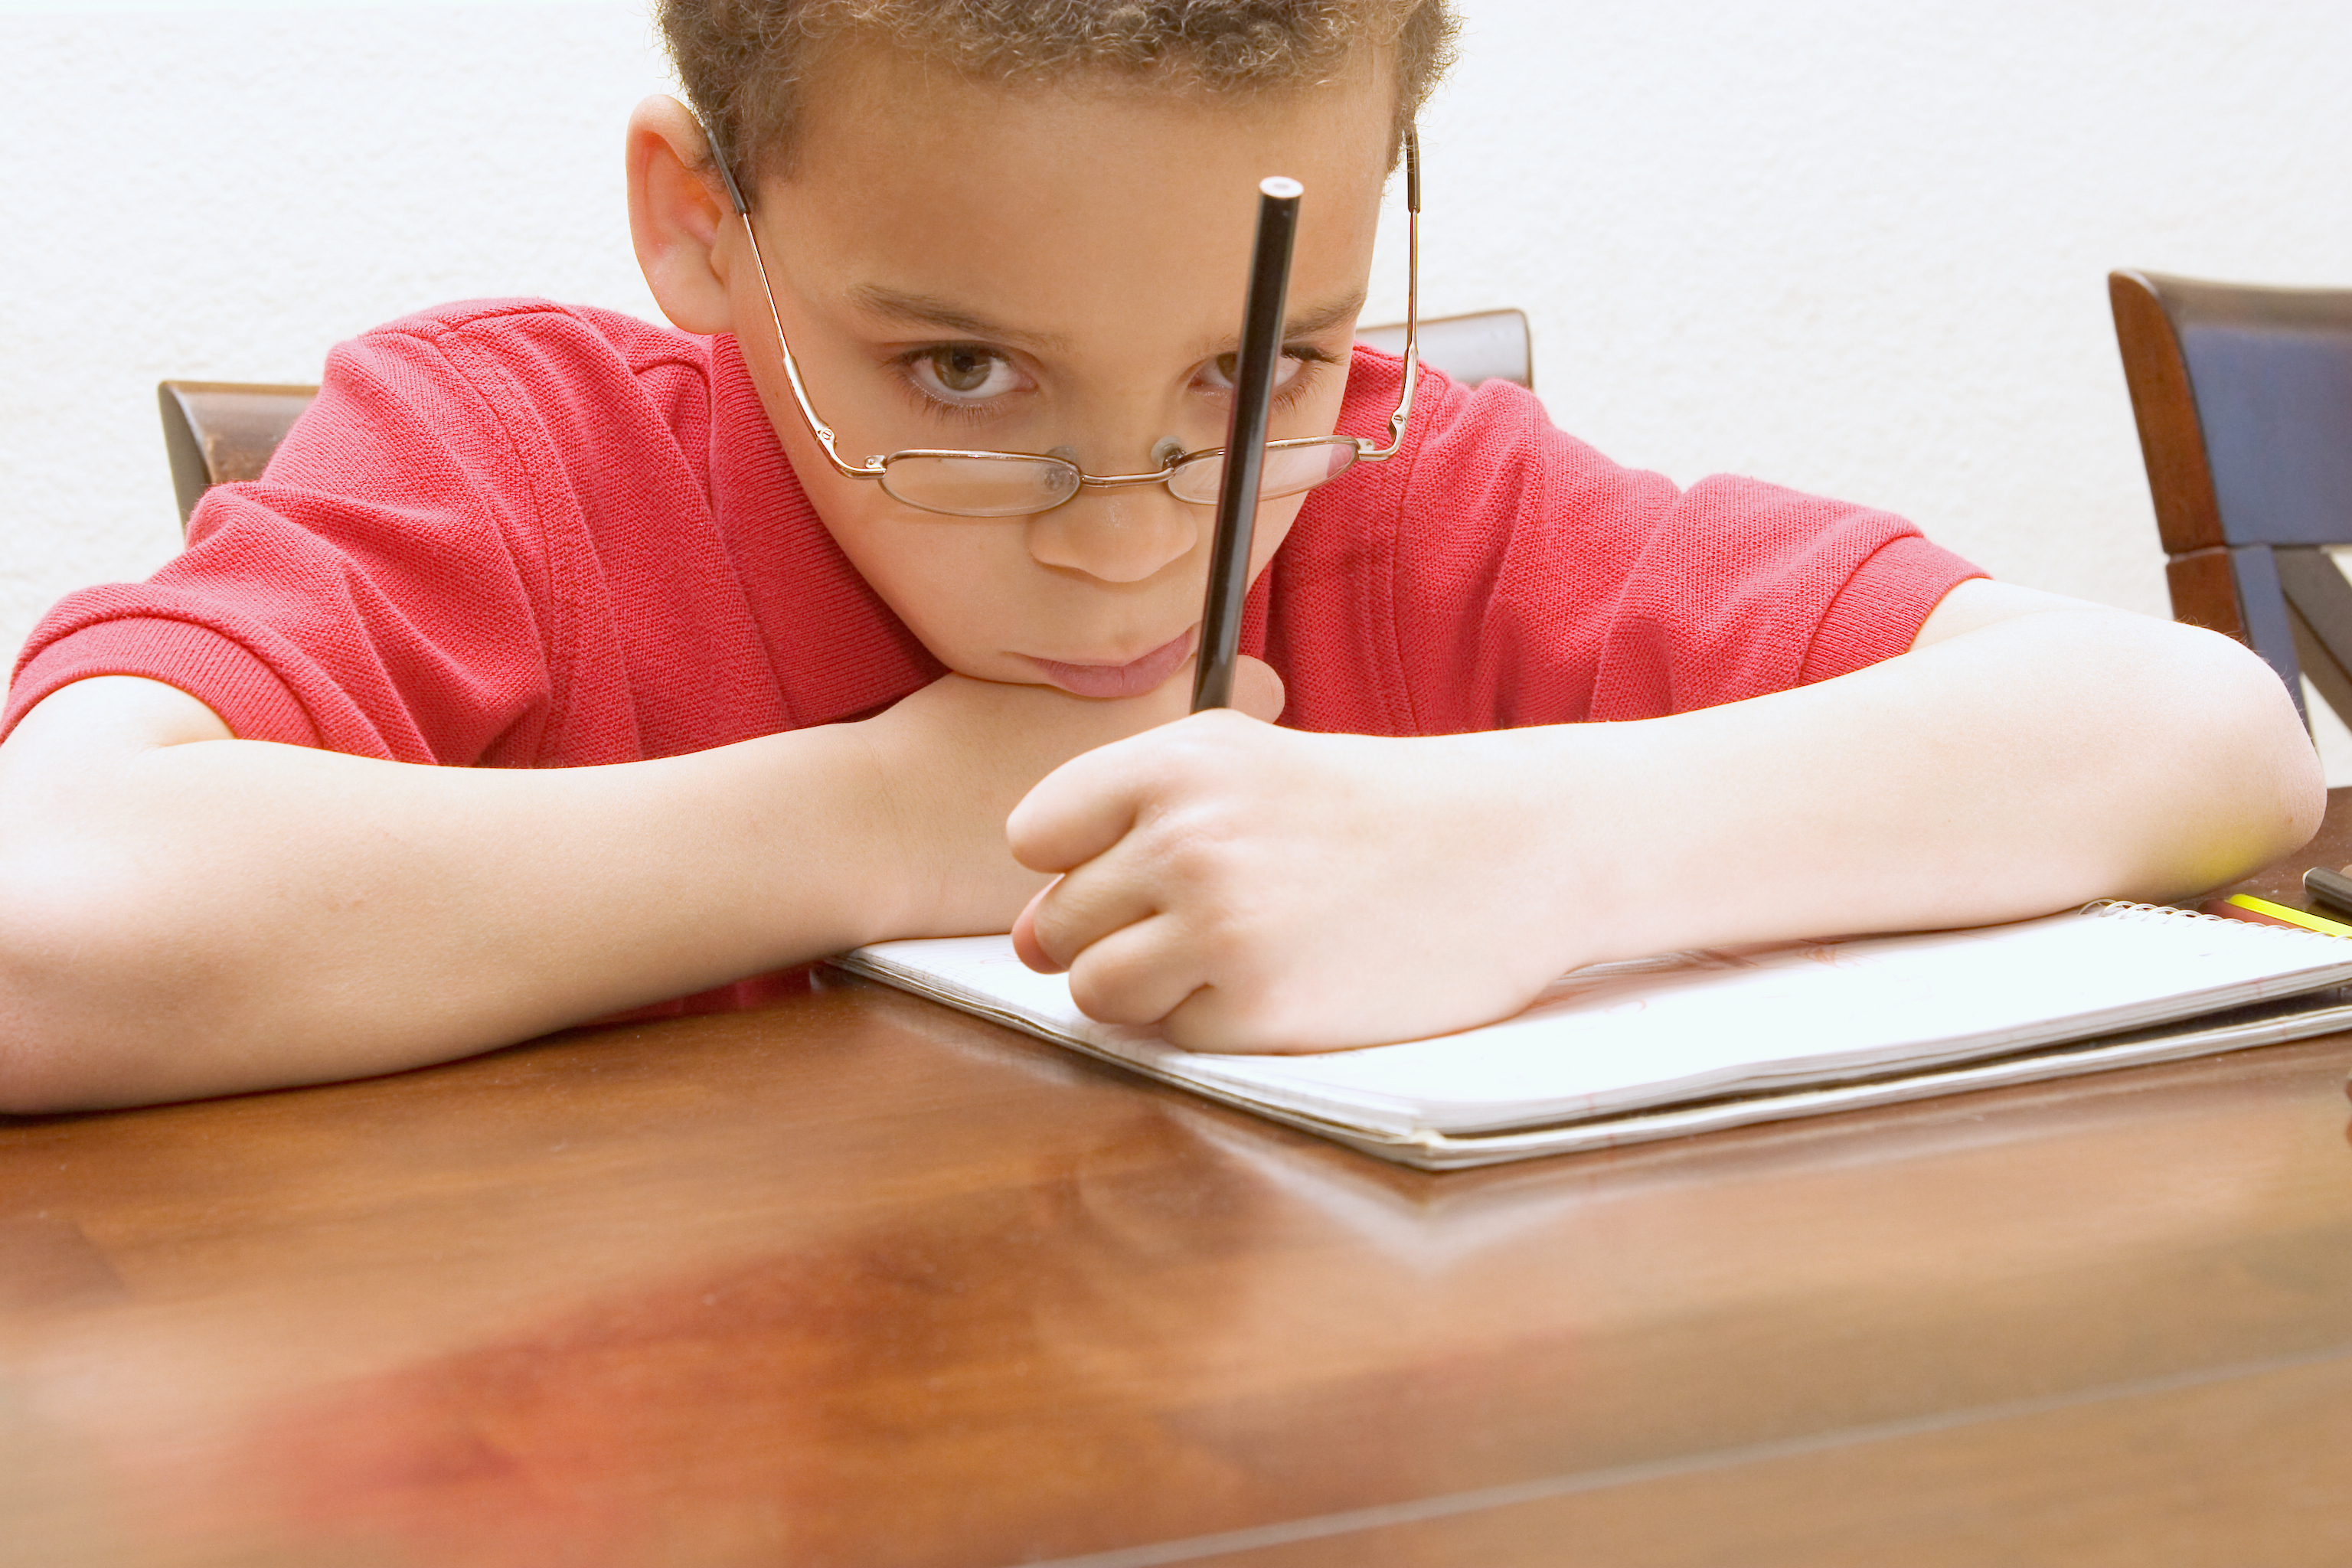 Left handed young boy wearing glasses reluctant to do homework not paying attention, staring into space.